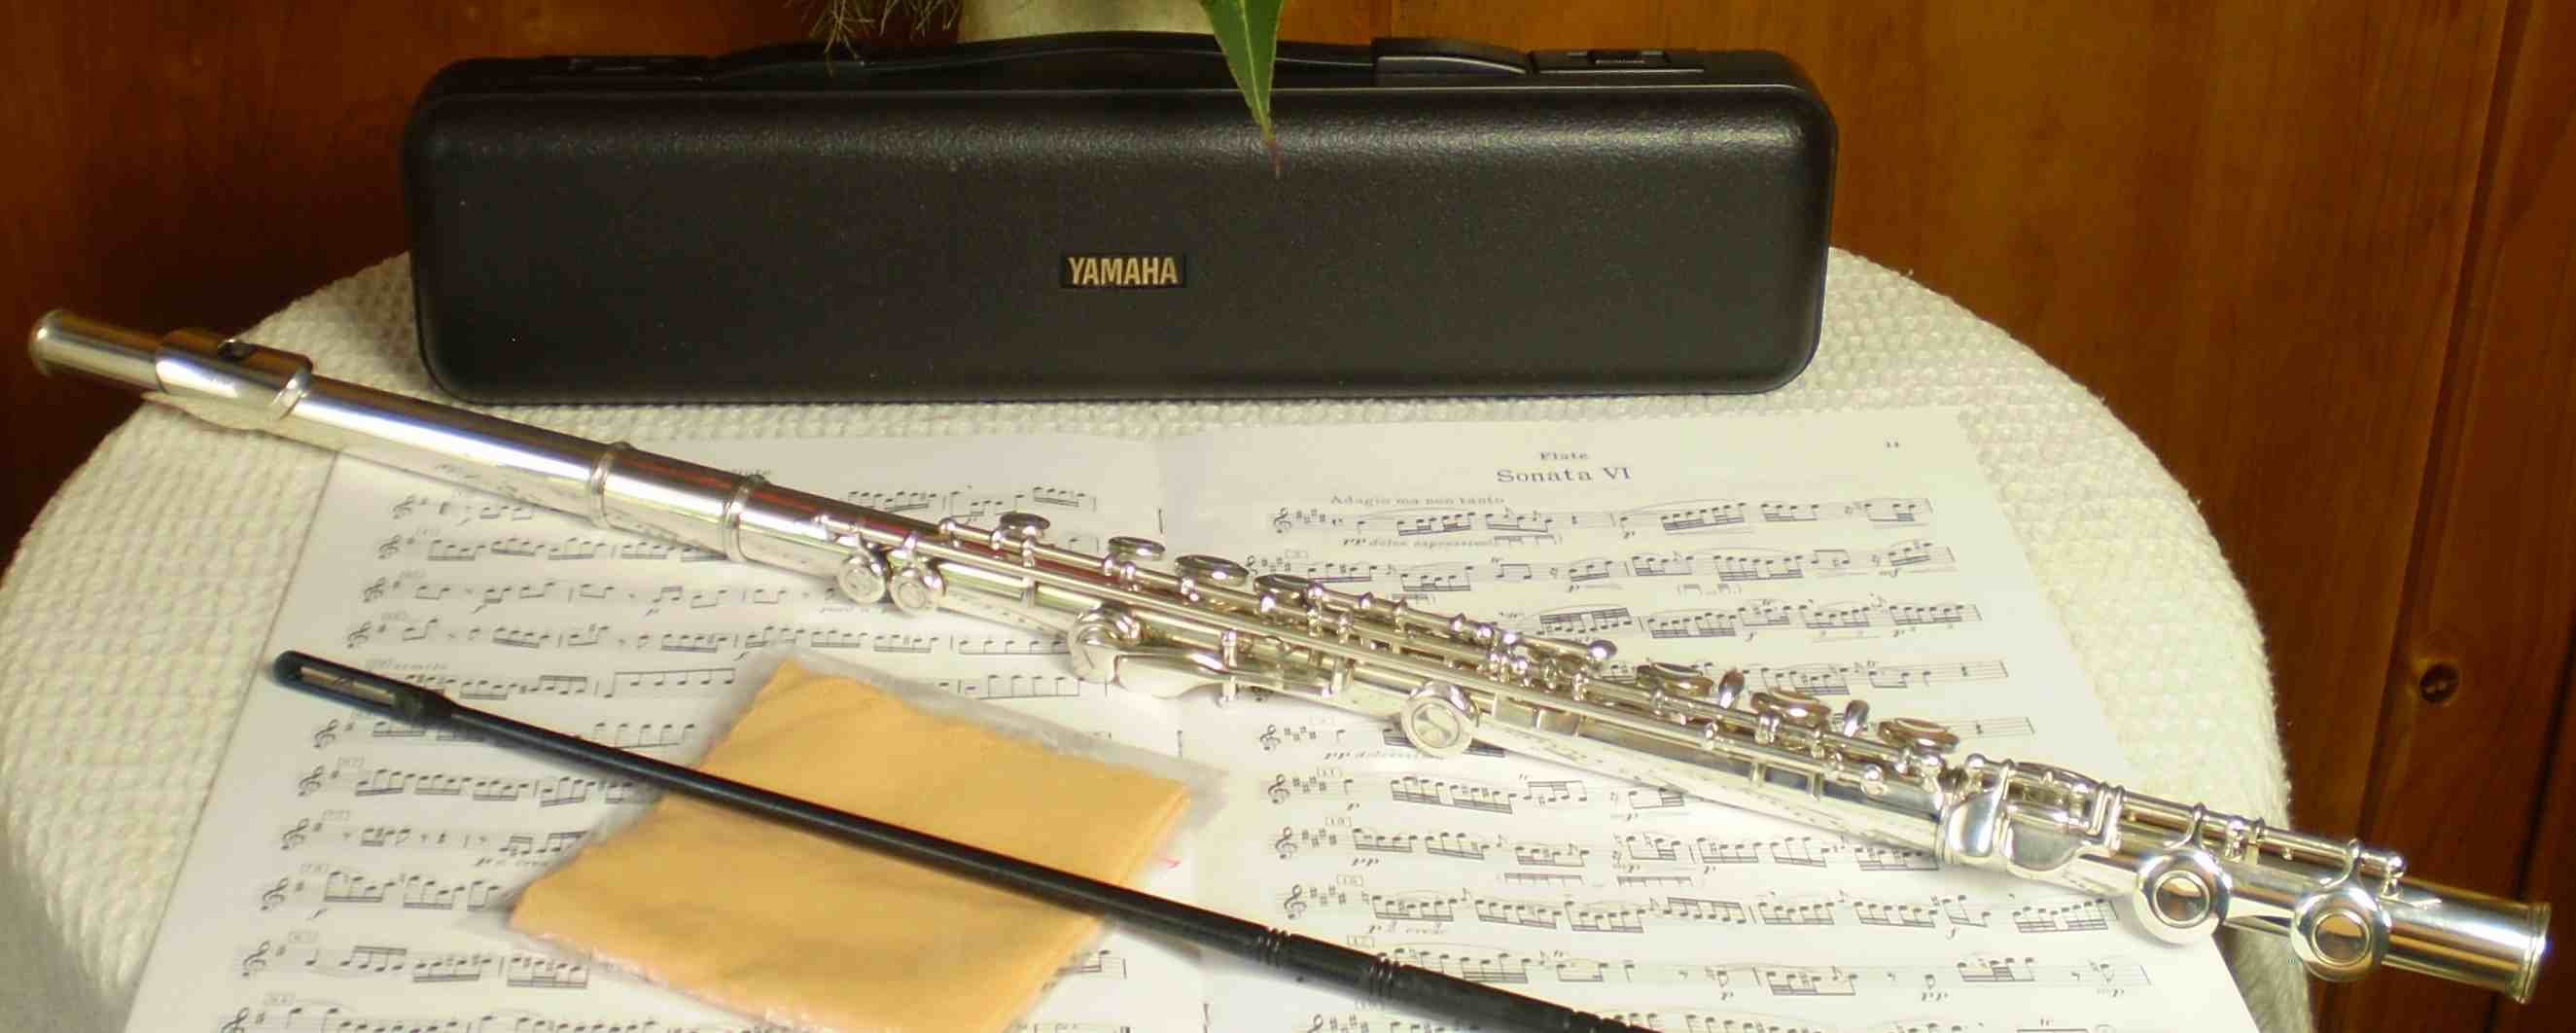 Pin yamaha yfl 221 student flute silver plated used model for Yamaha yfl 221 student flute